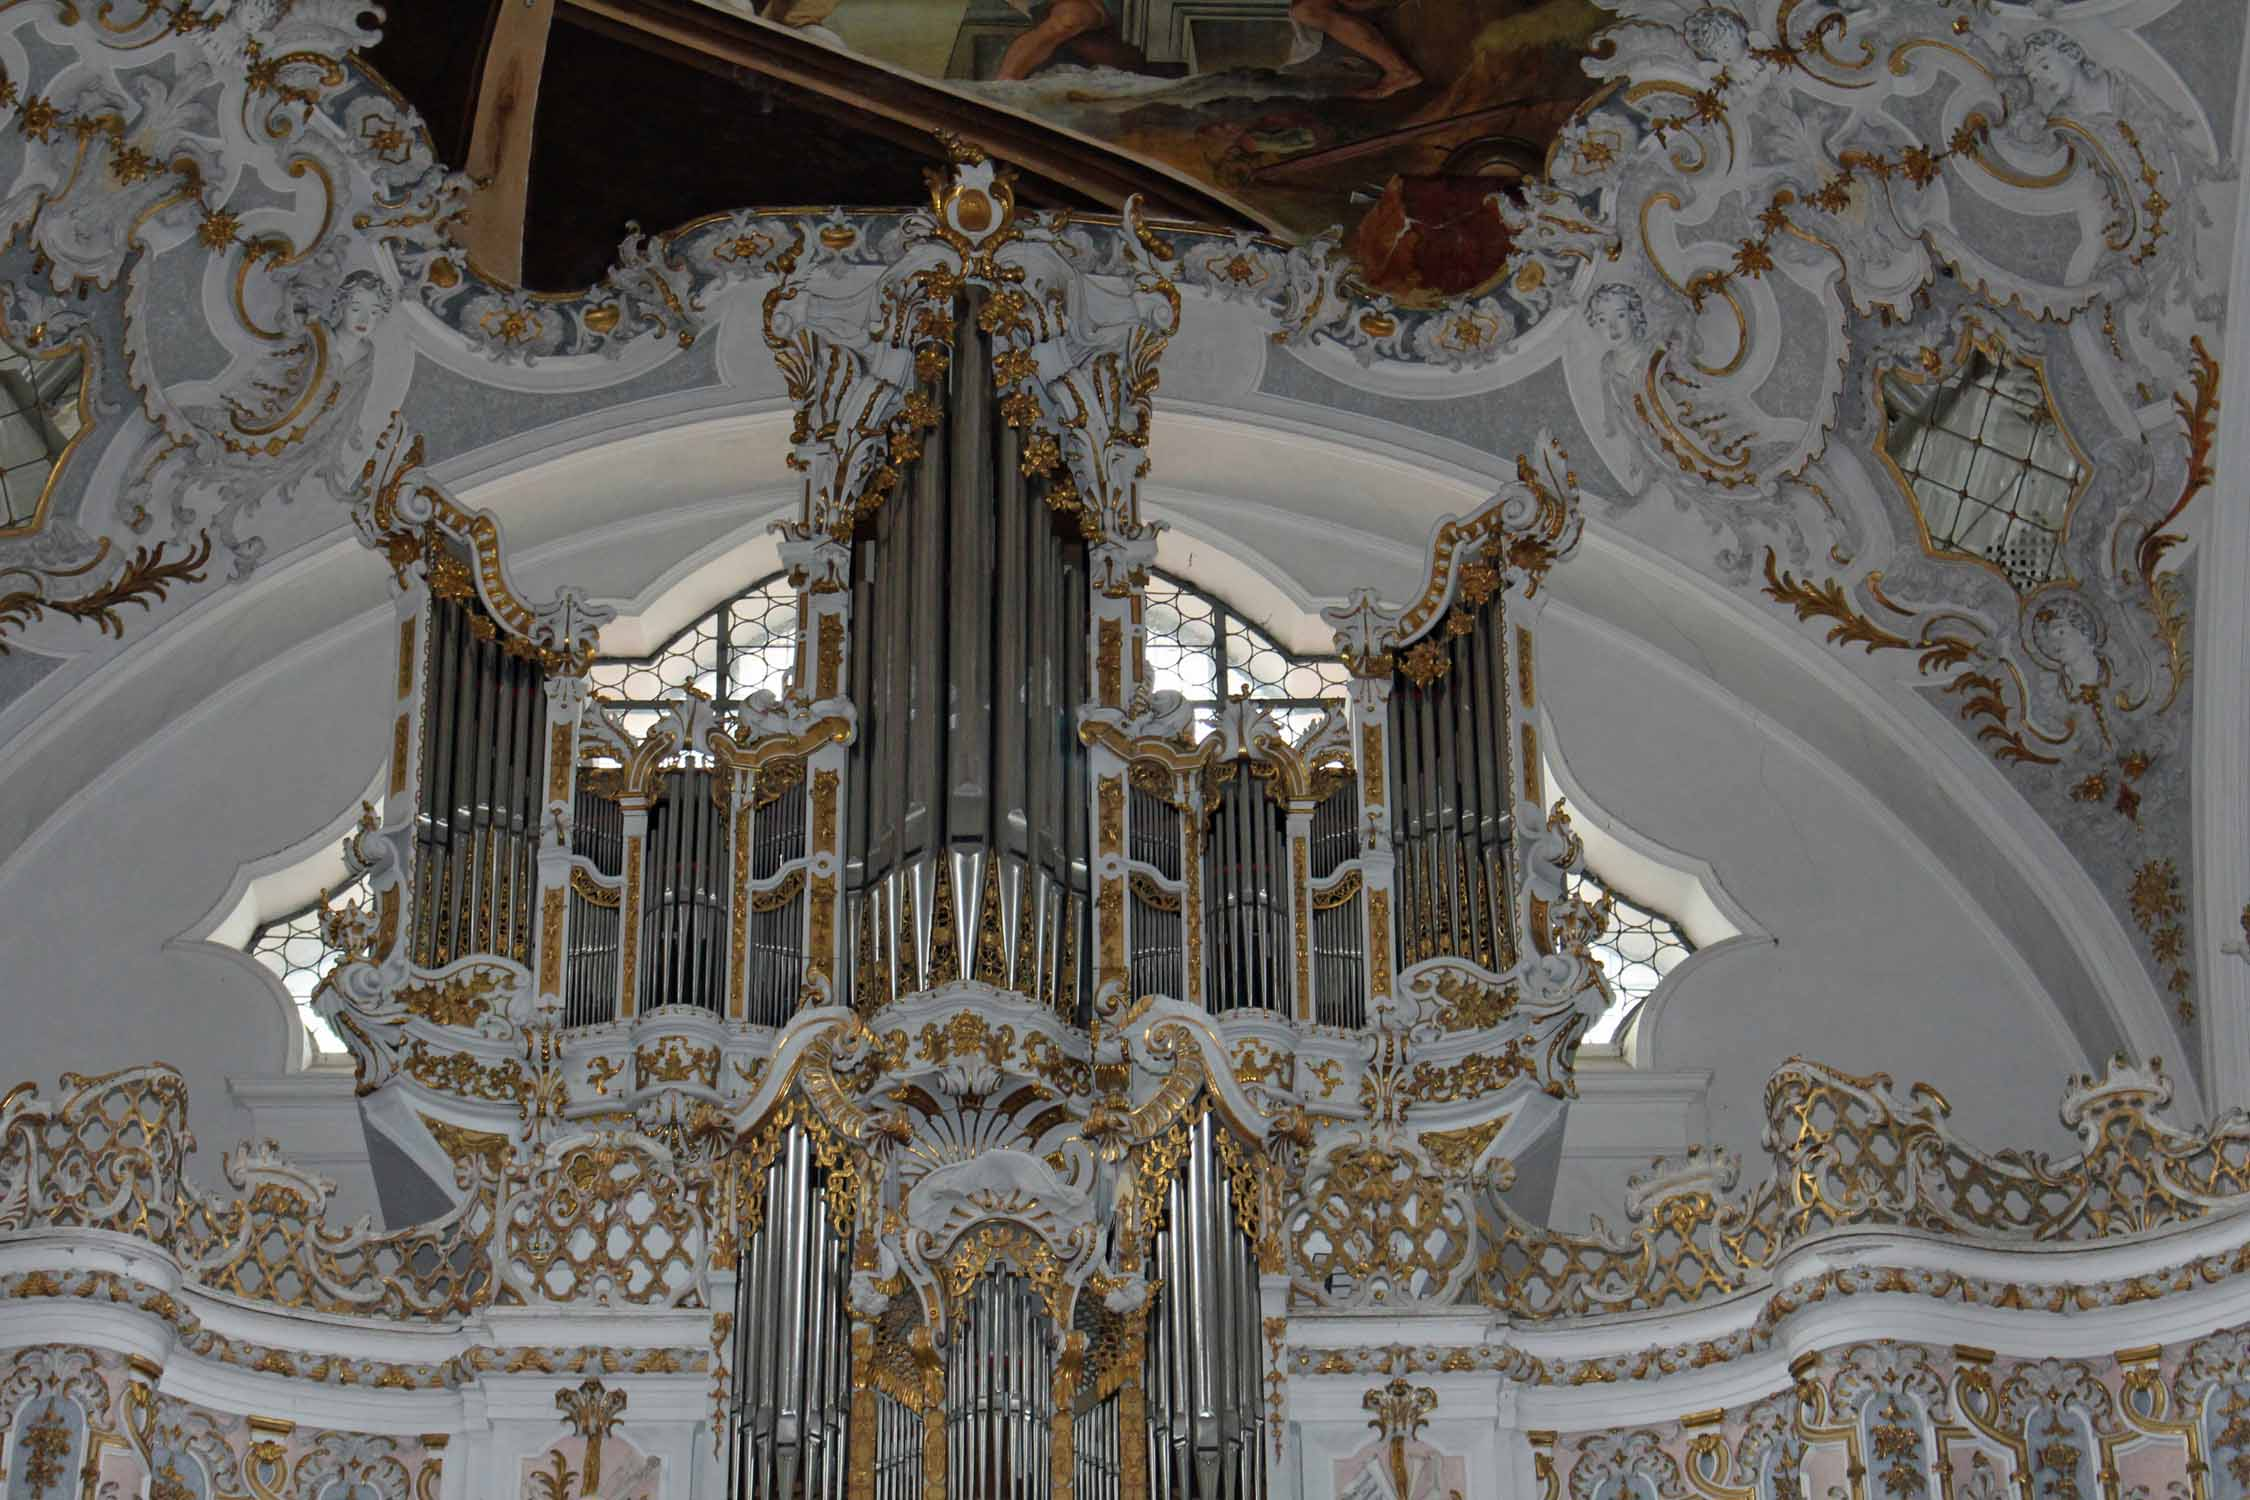 The organ of the monastery of Steingaden